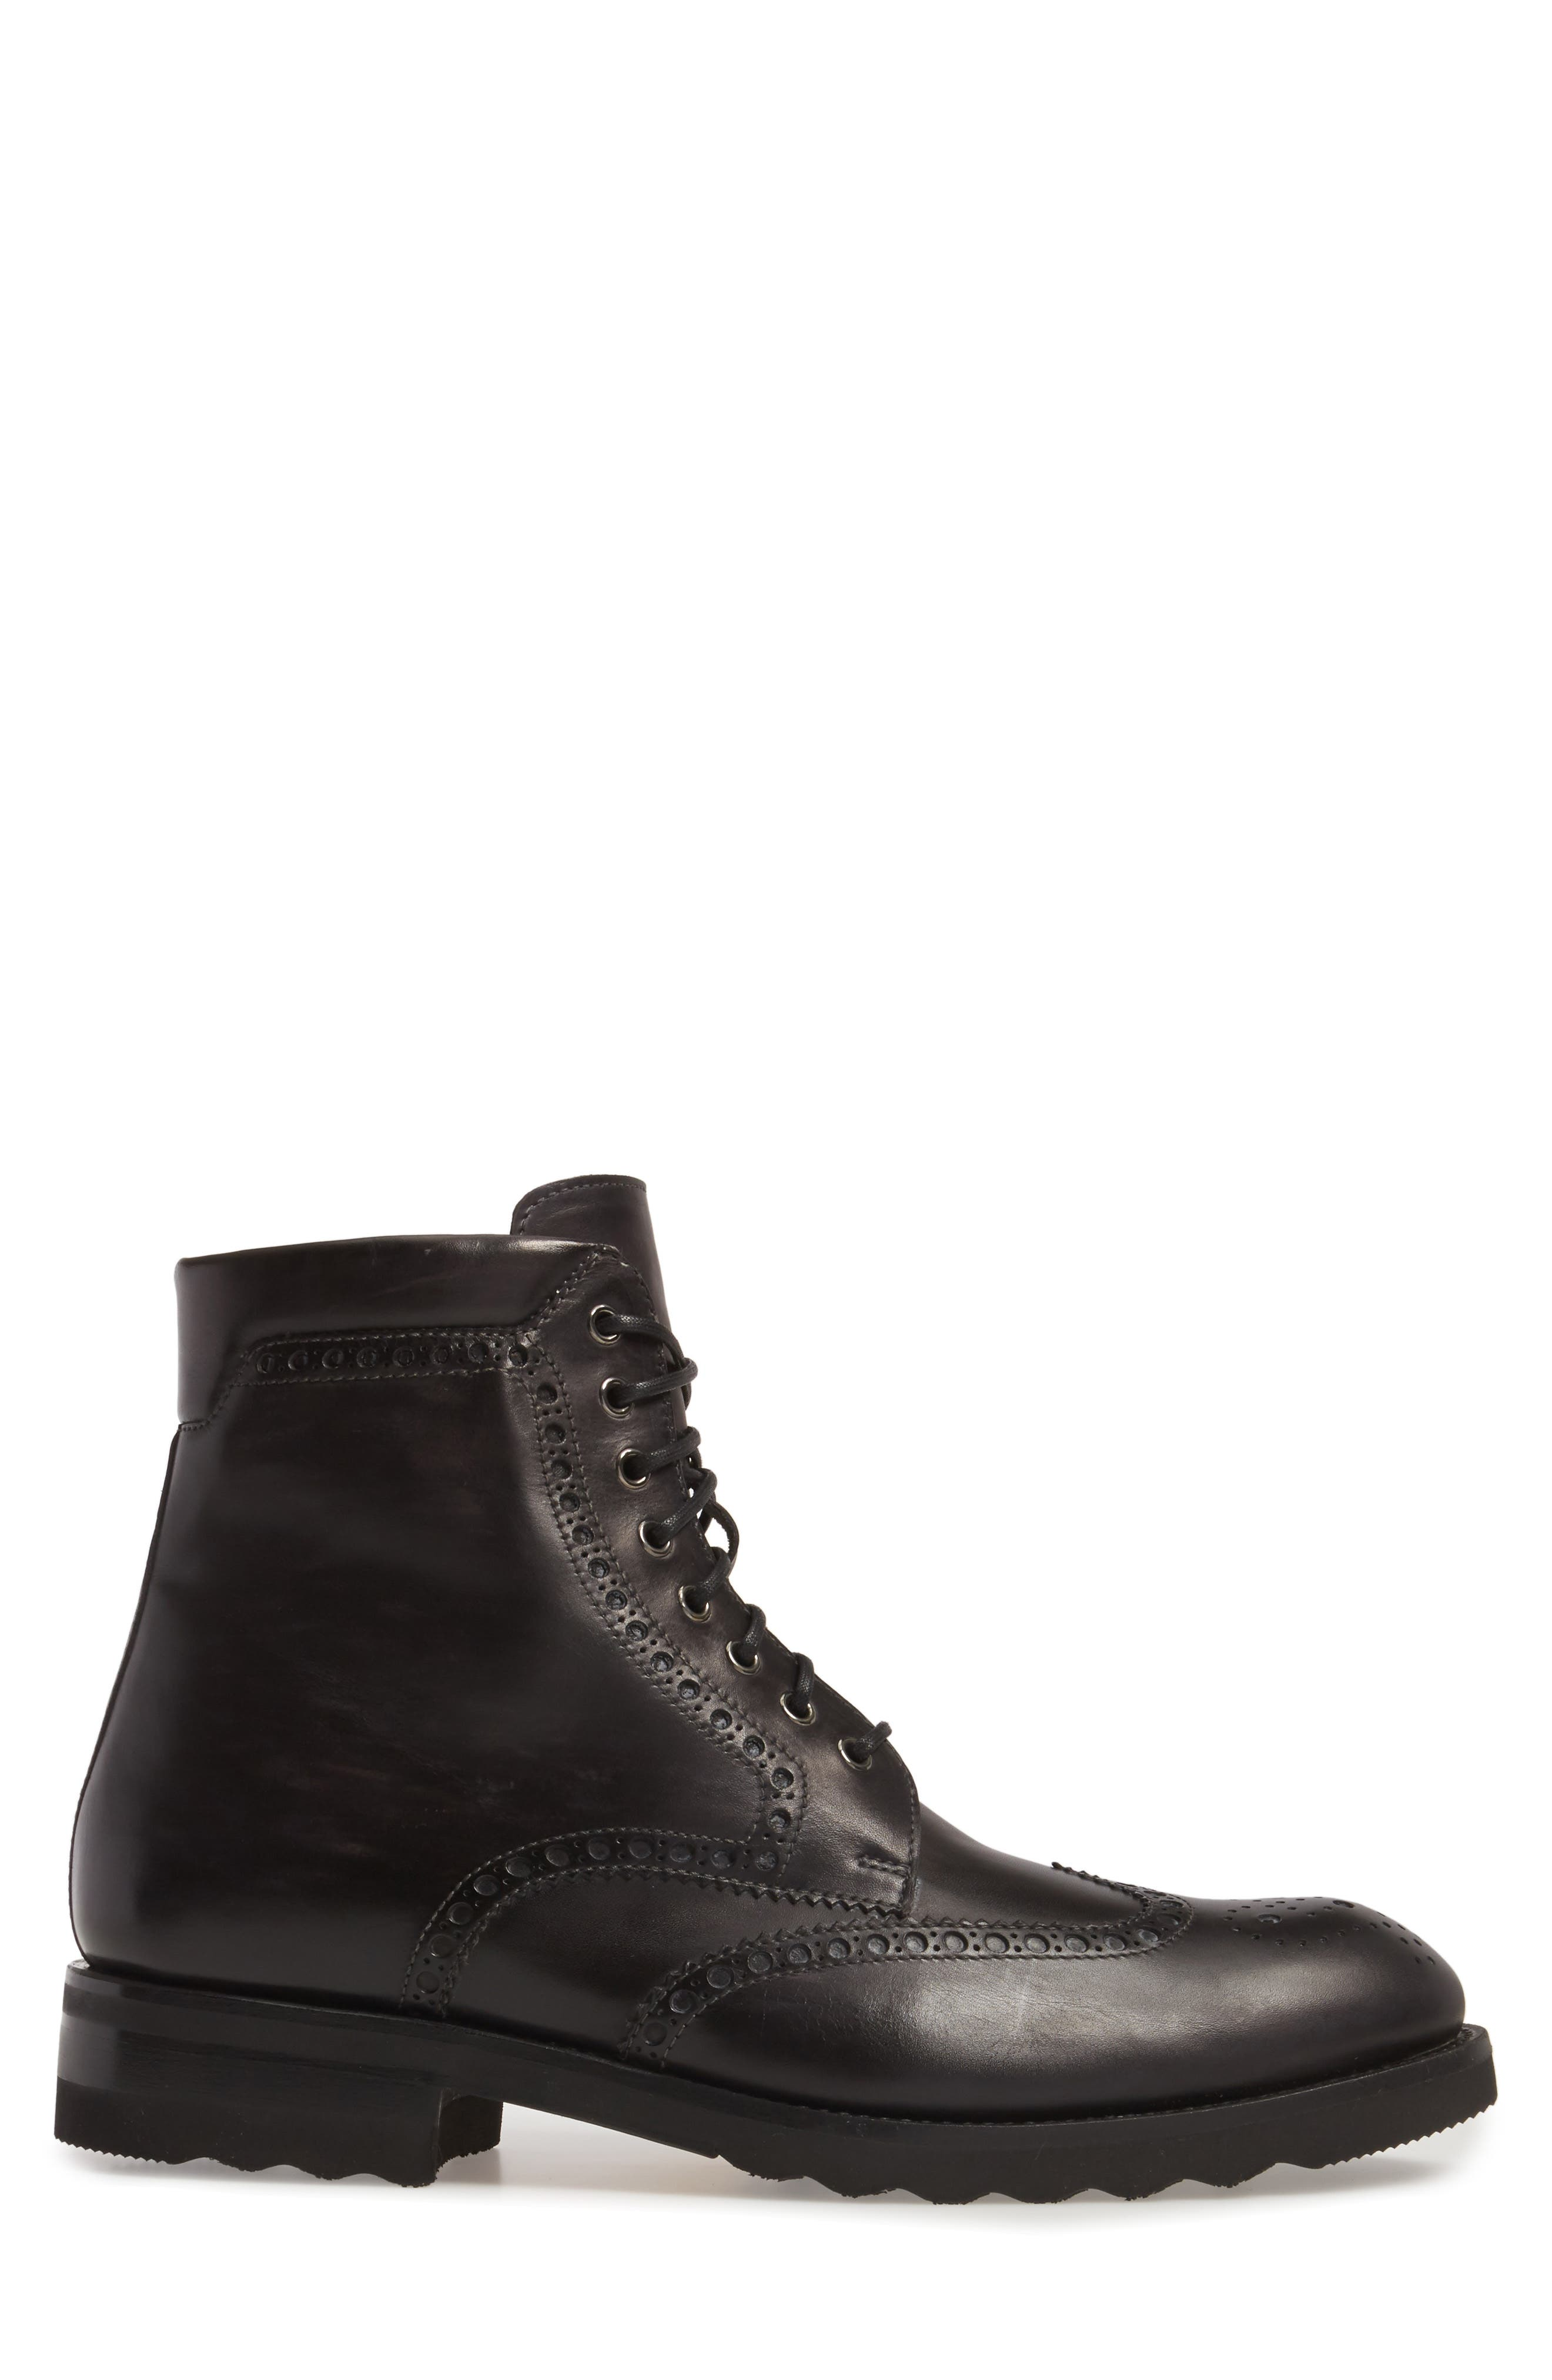 Fairfax Wingtip Boot,                             Alternate thumbnail 3, color,                             020